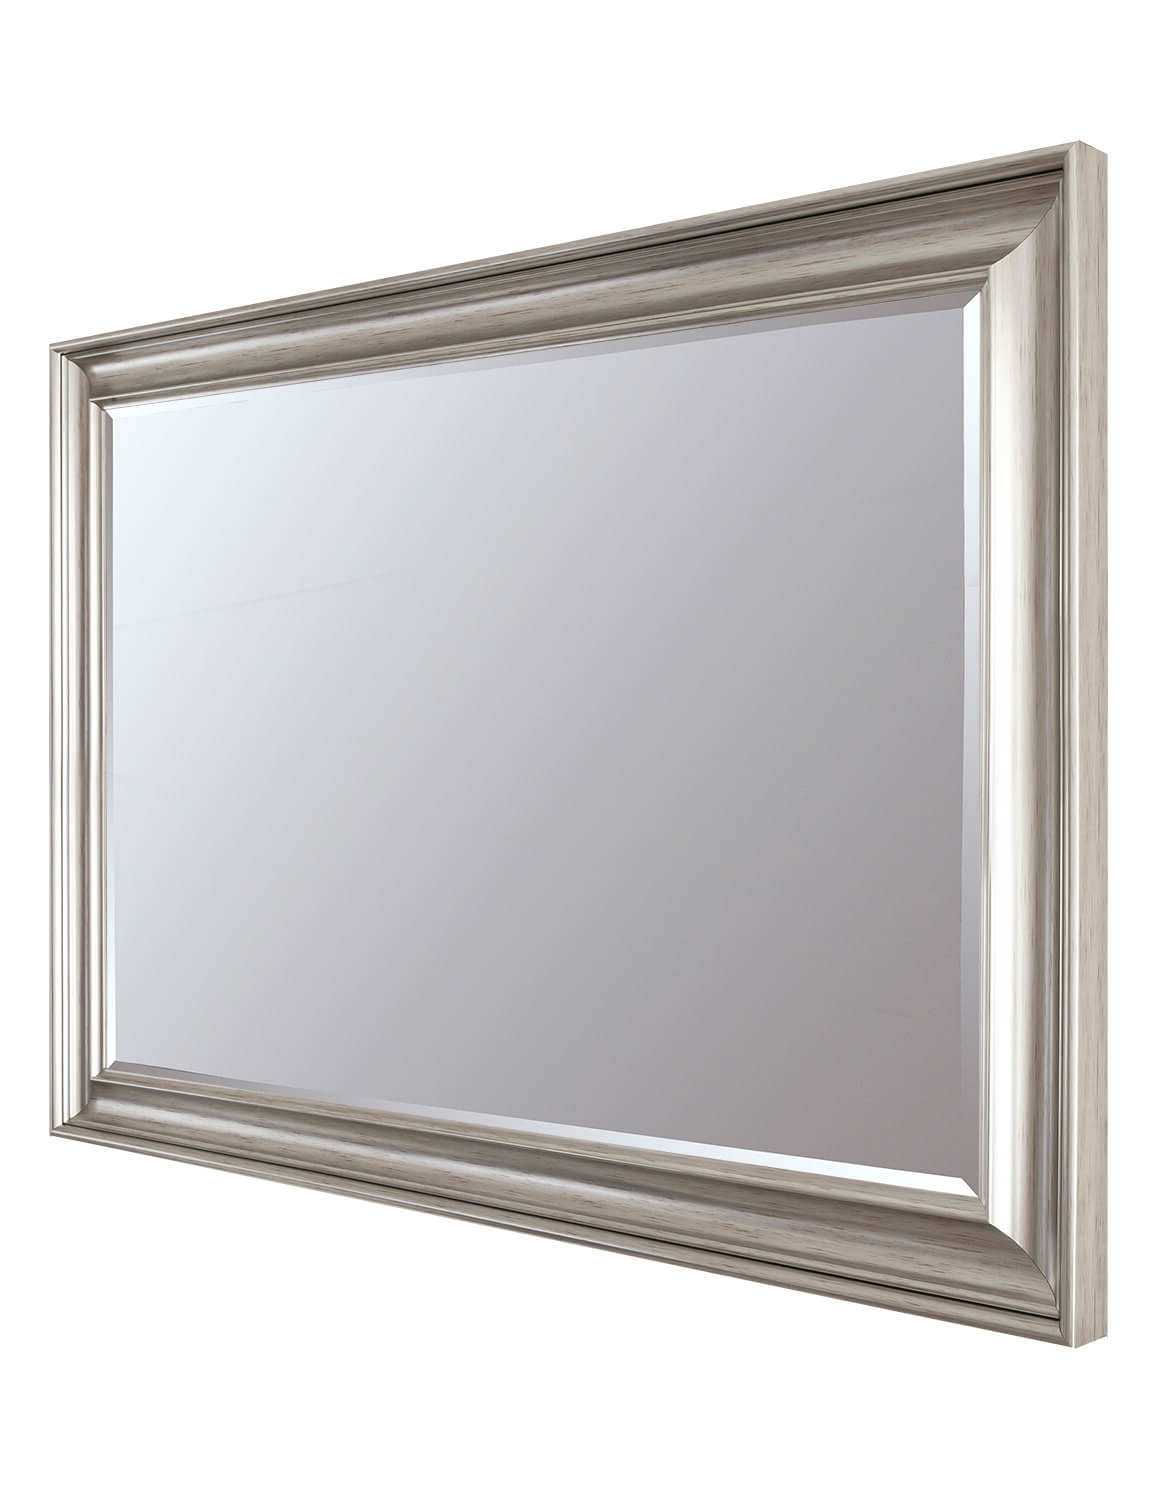 Luxe Silver 92X118Cm Large Wall Mirror With Regard To Well Known Silver Wall Mirrors (Gallery 12 of 20)